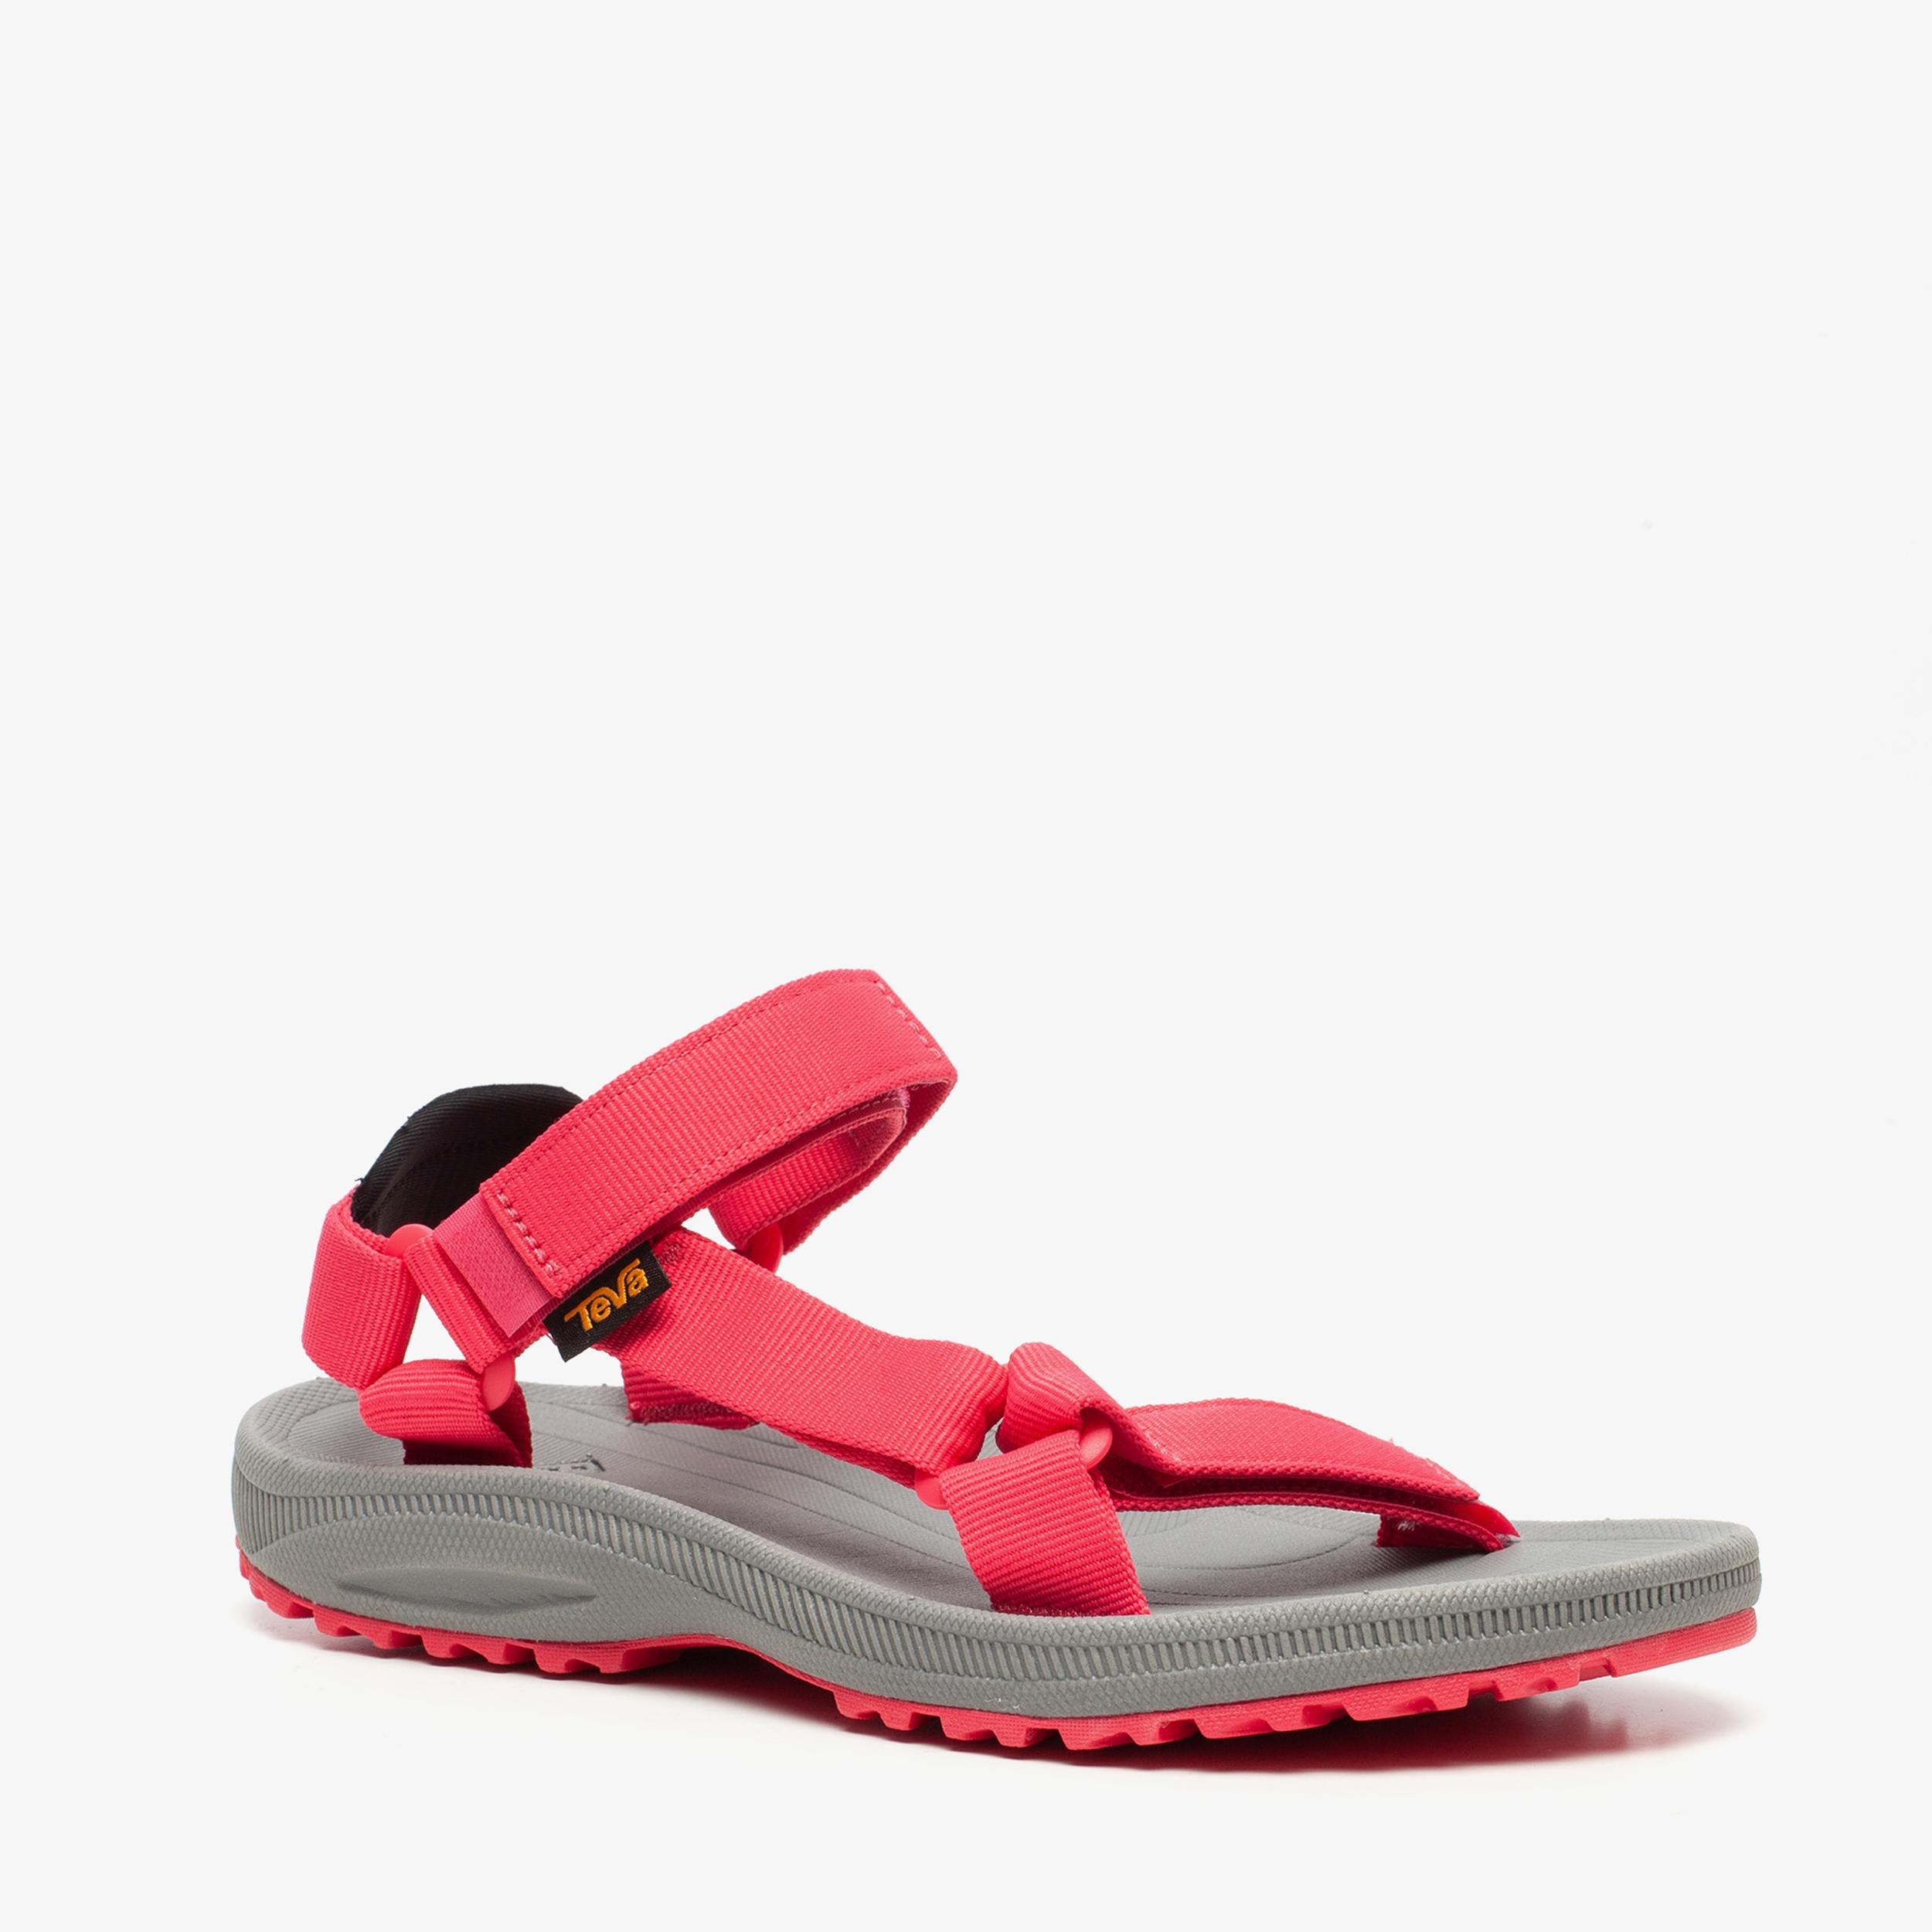 Teva Winsted Solid dames sandalen | Scapino.nl